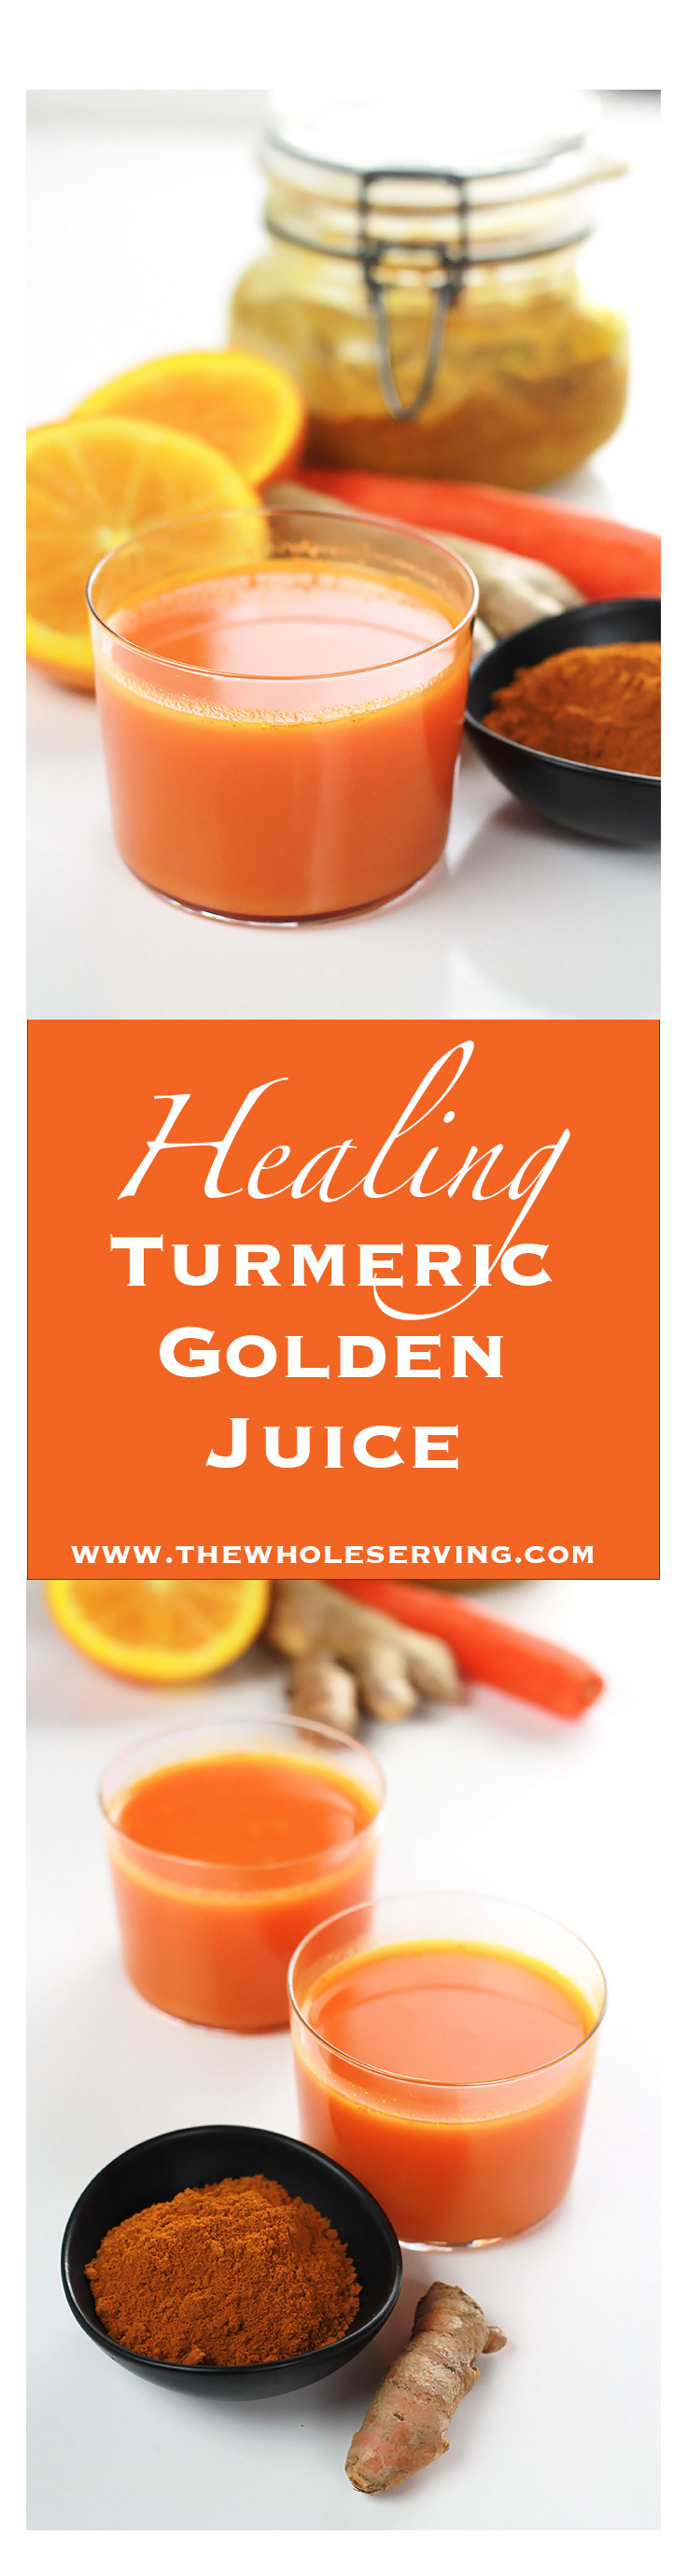 Healing Turmeric Golden Juice - A healthy anti-inflammatory drink you and your body deserves.